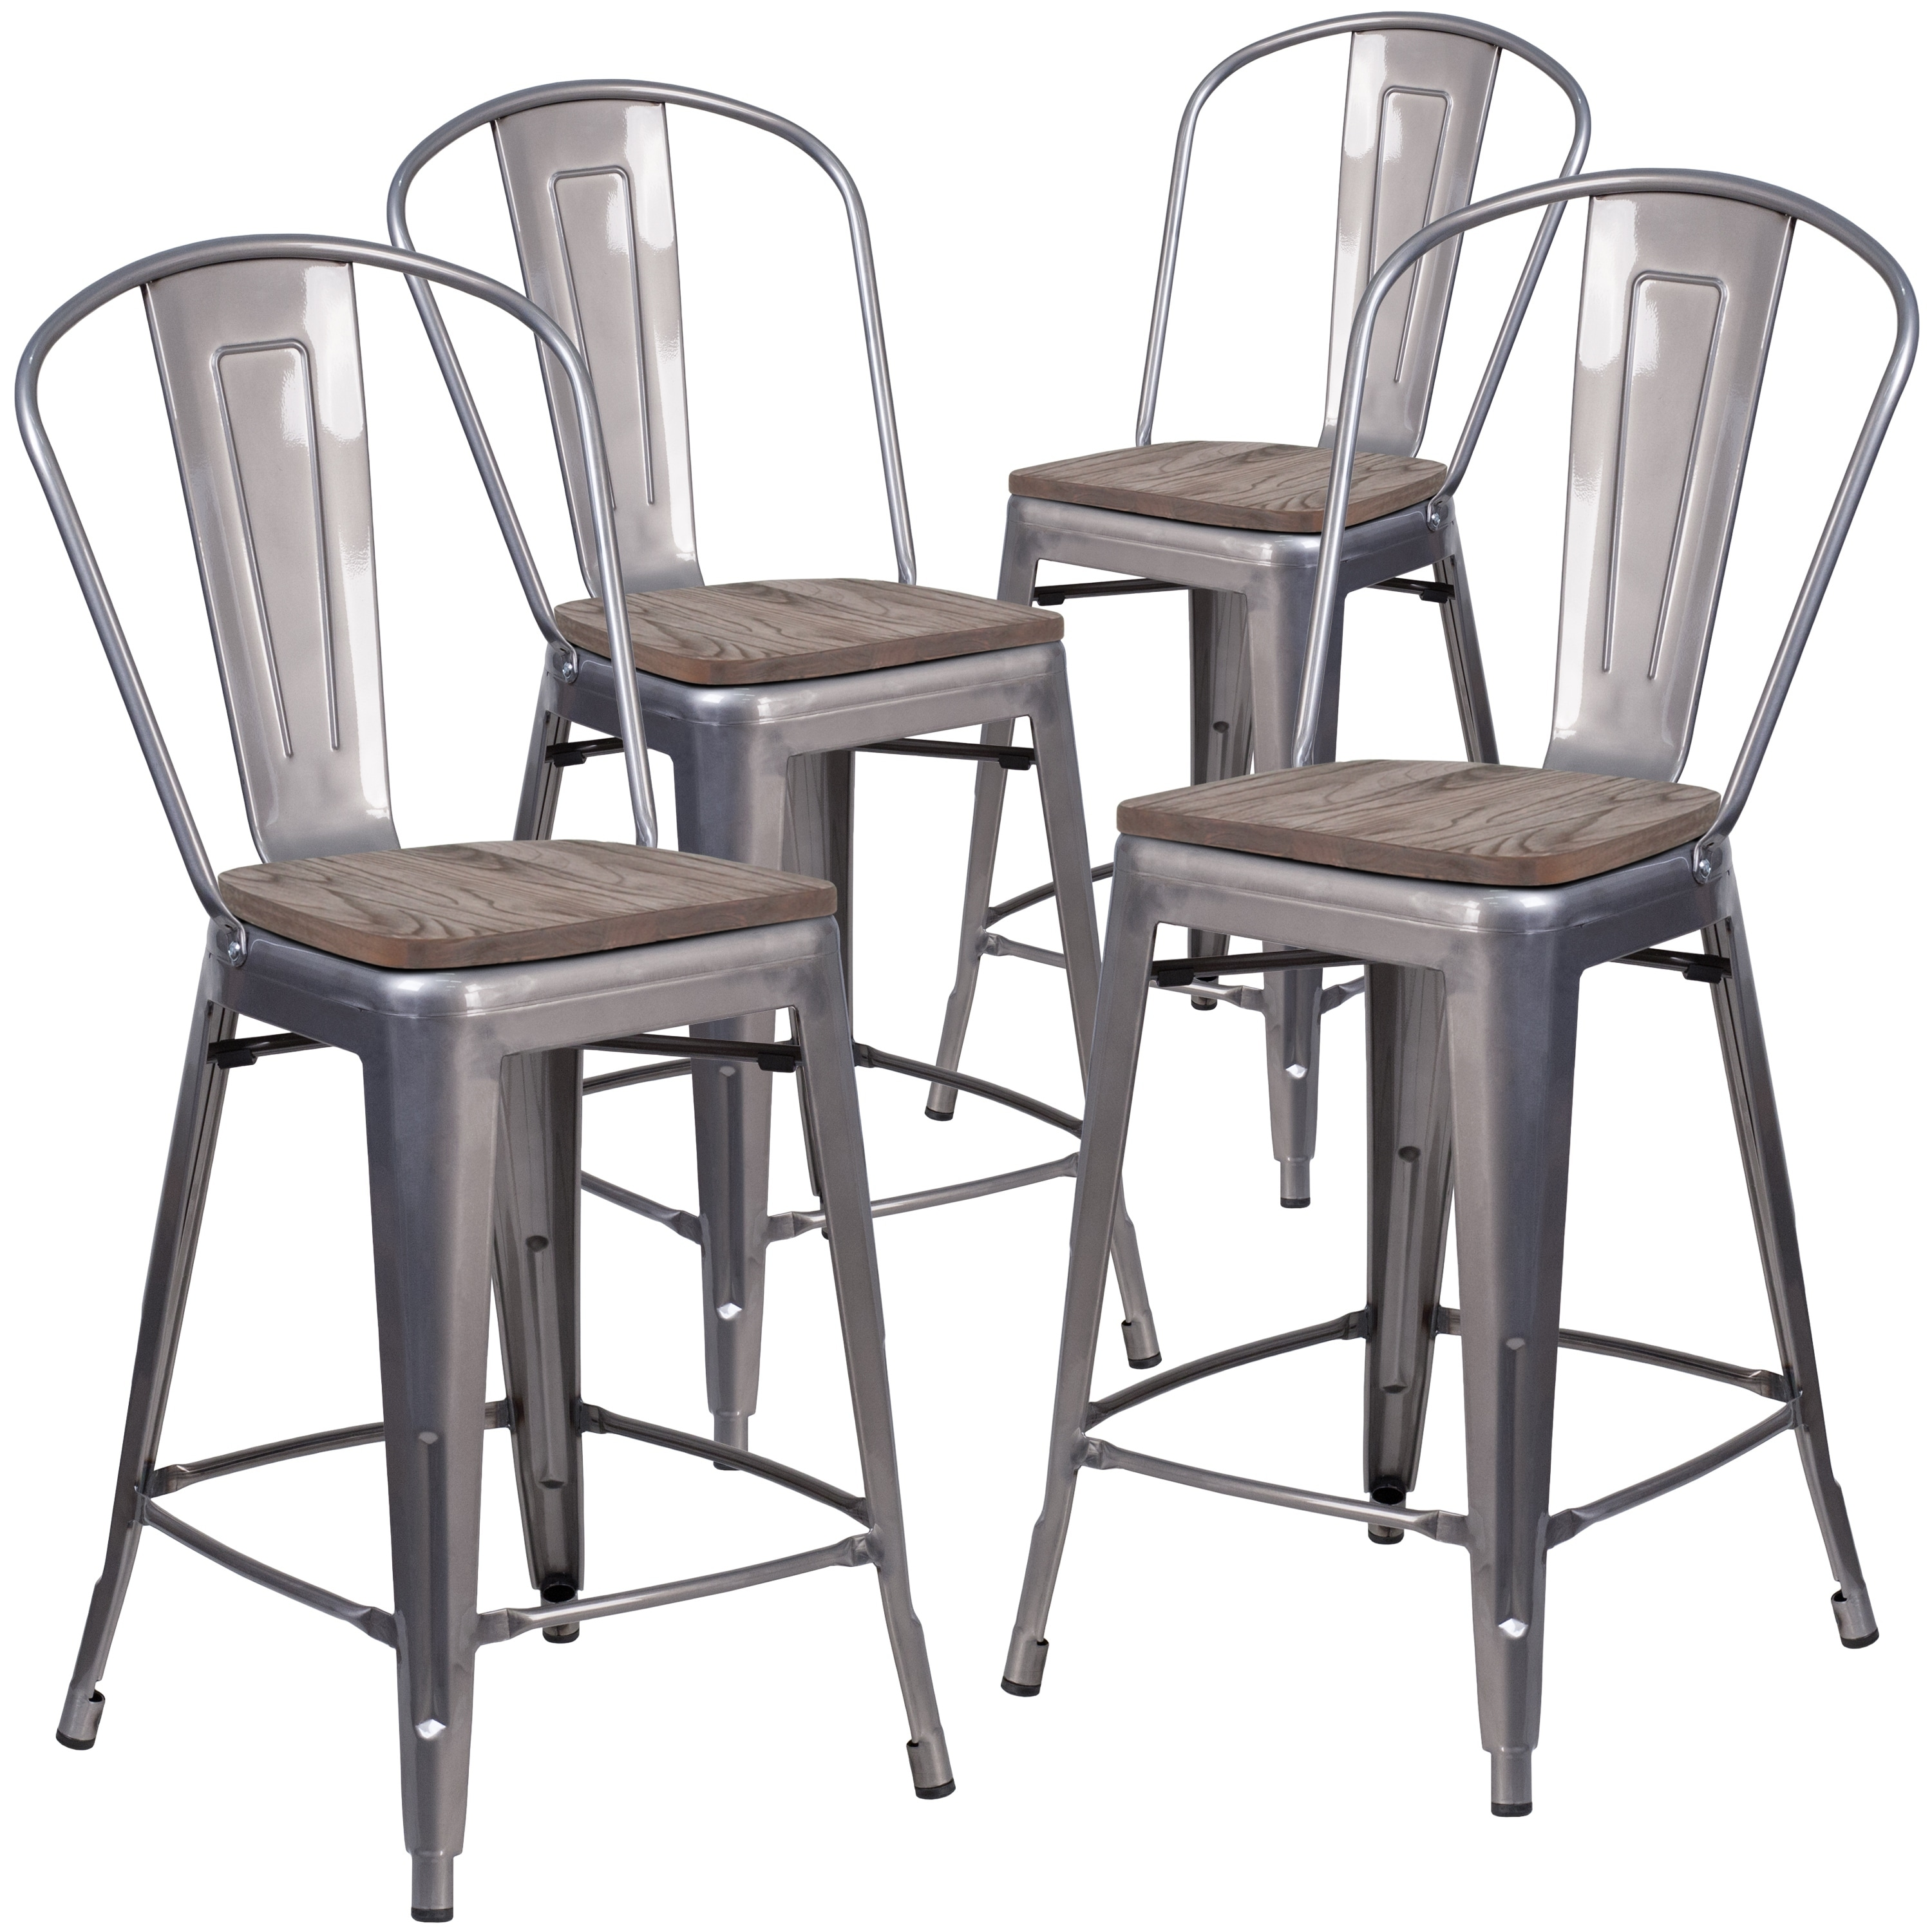 Shop 4 Pk 24 High Counter Height Stool With Back And Wood Seat